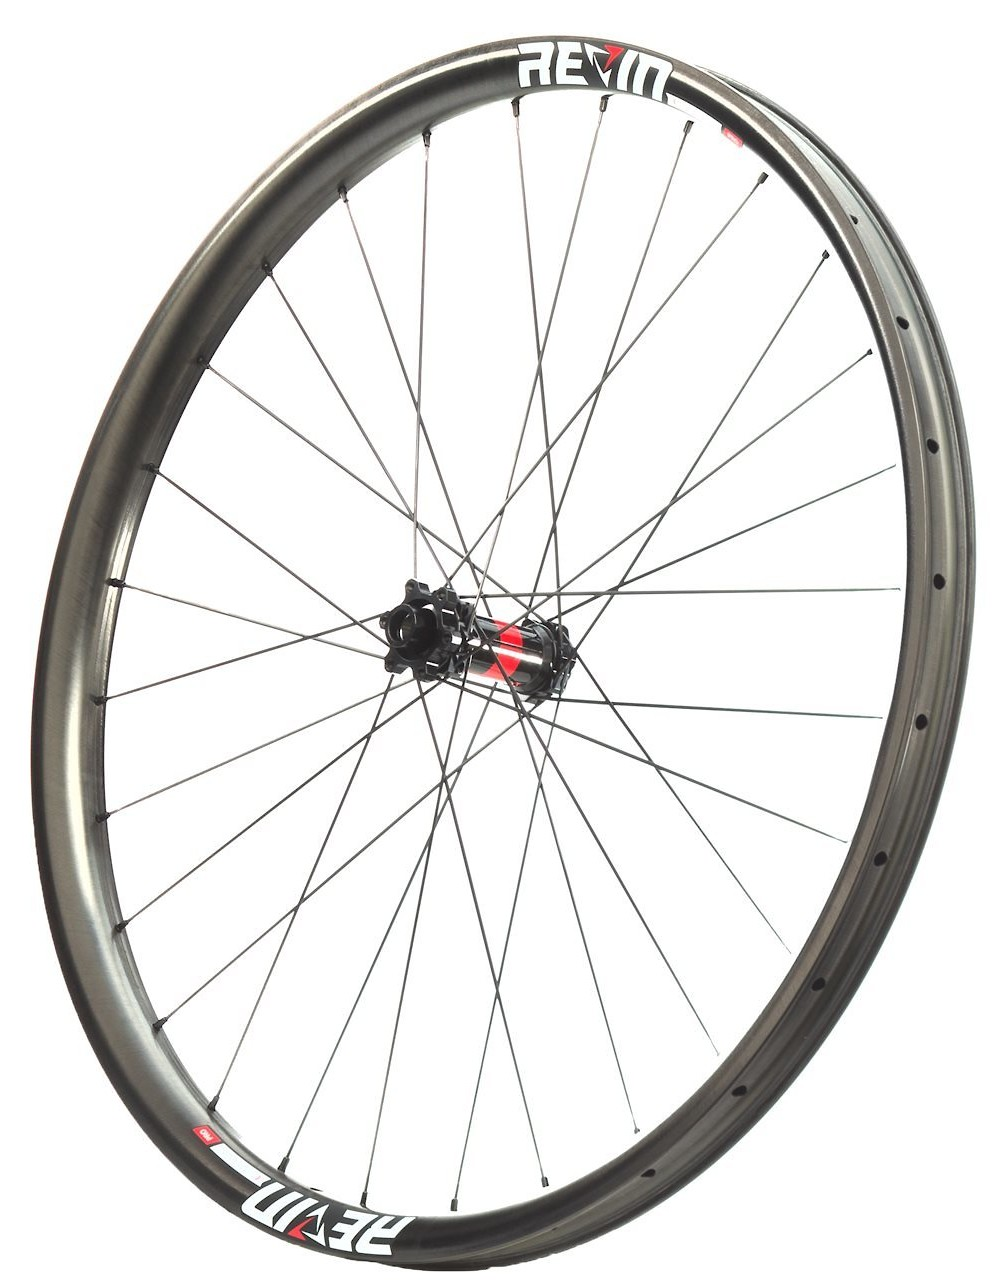 revin cycling e27 pro carbon mt wheelset reviews parisons Cheap Oakley Sunglasses related revin cycling